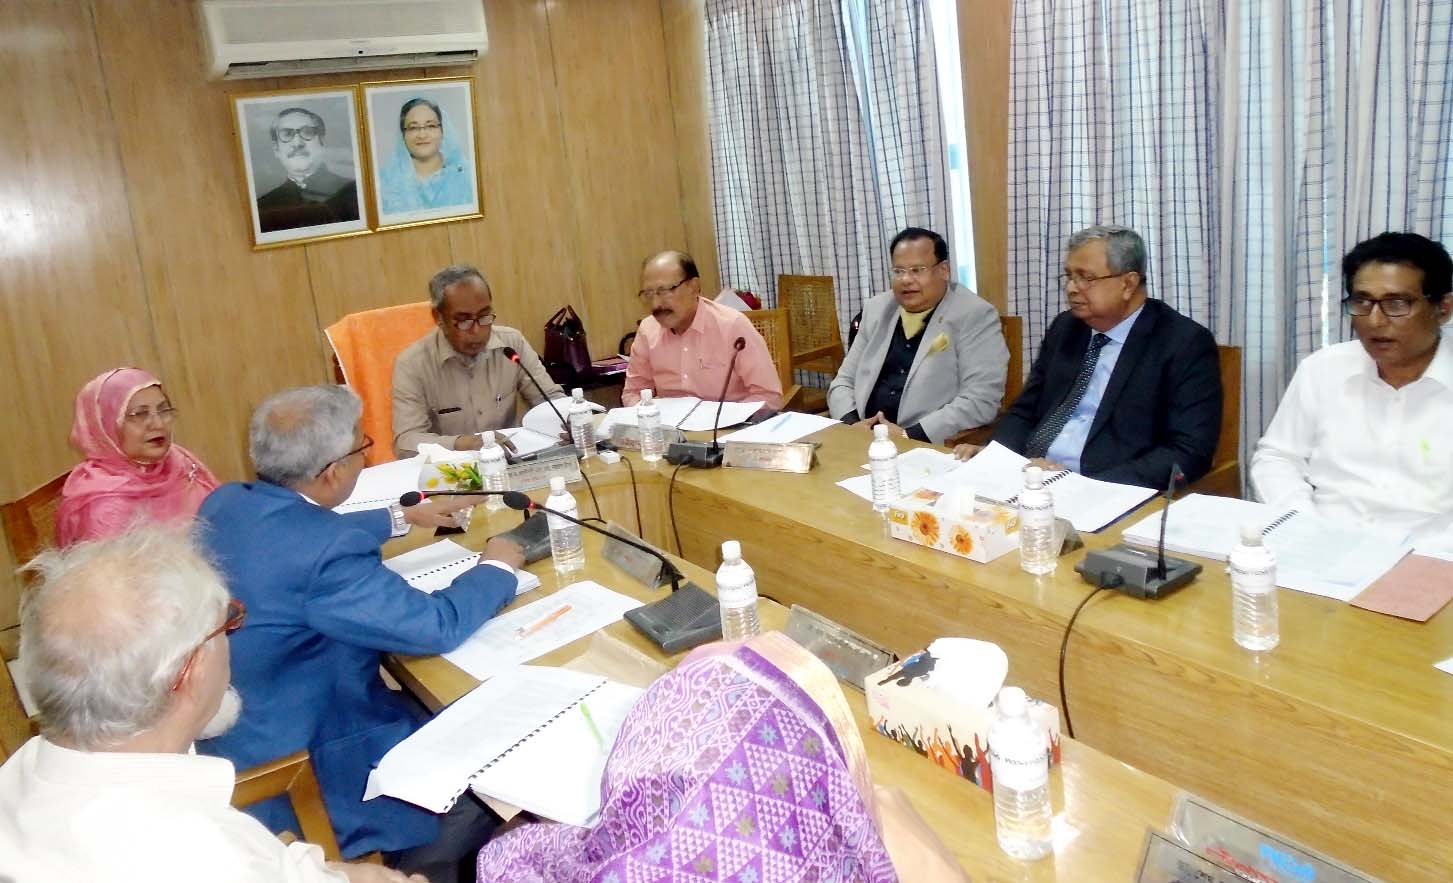 The 43rd Board meeting of CWASA  was held at Chittagong WASA Board Room on Saturday. Chairman of WASA  Board Prof Dr SM Nazrul Islam  presided over  the meeting. WASA Board Member Additional Secretary Begum Nasrin Akter and other members also attended the meeting.